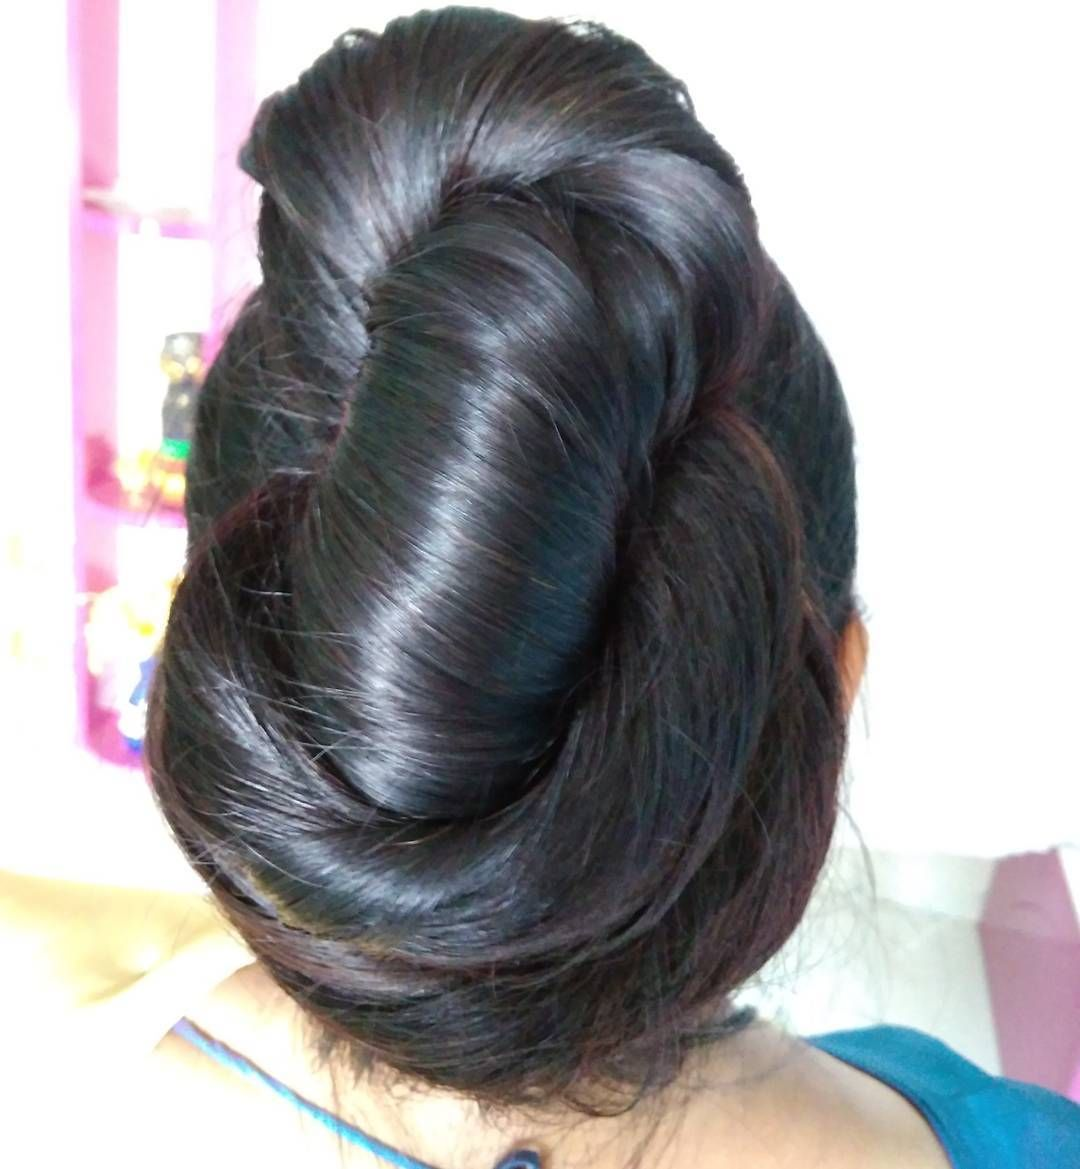 No Photo Description Available Bun Hairstyles Long Hair Styles Big Bun Hair